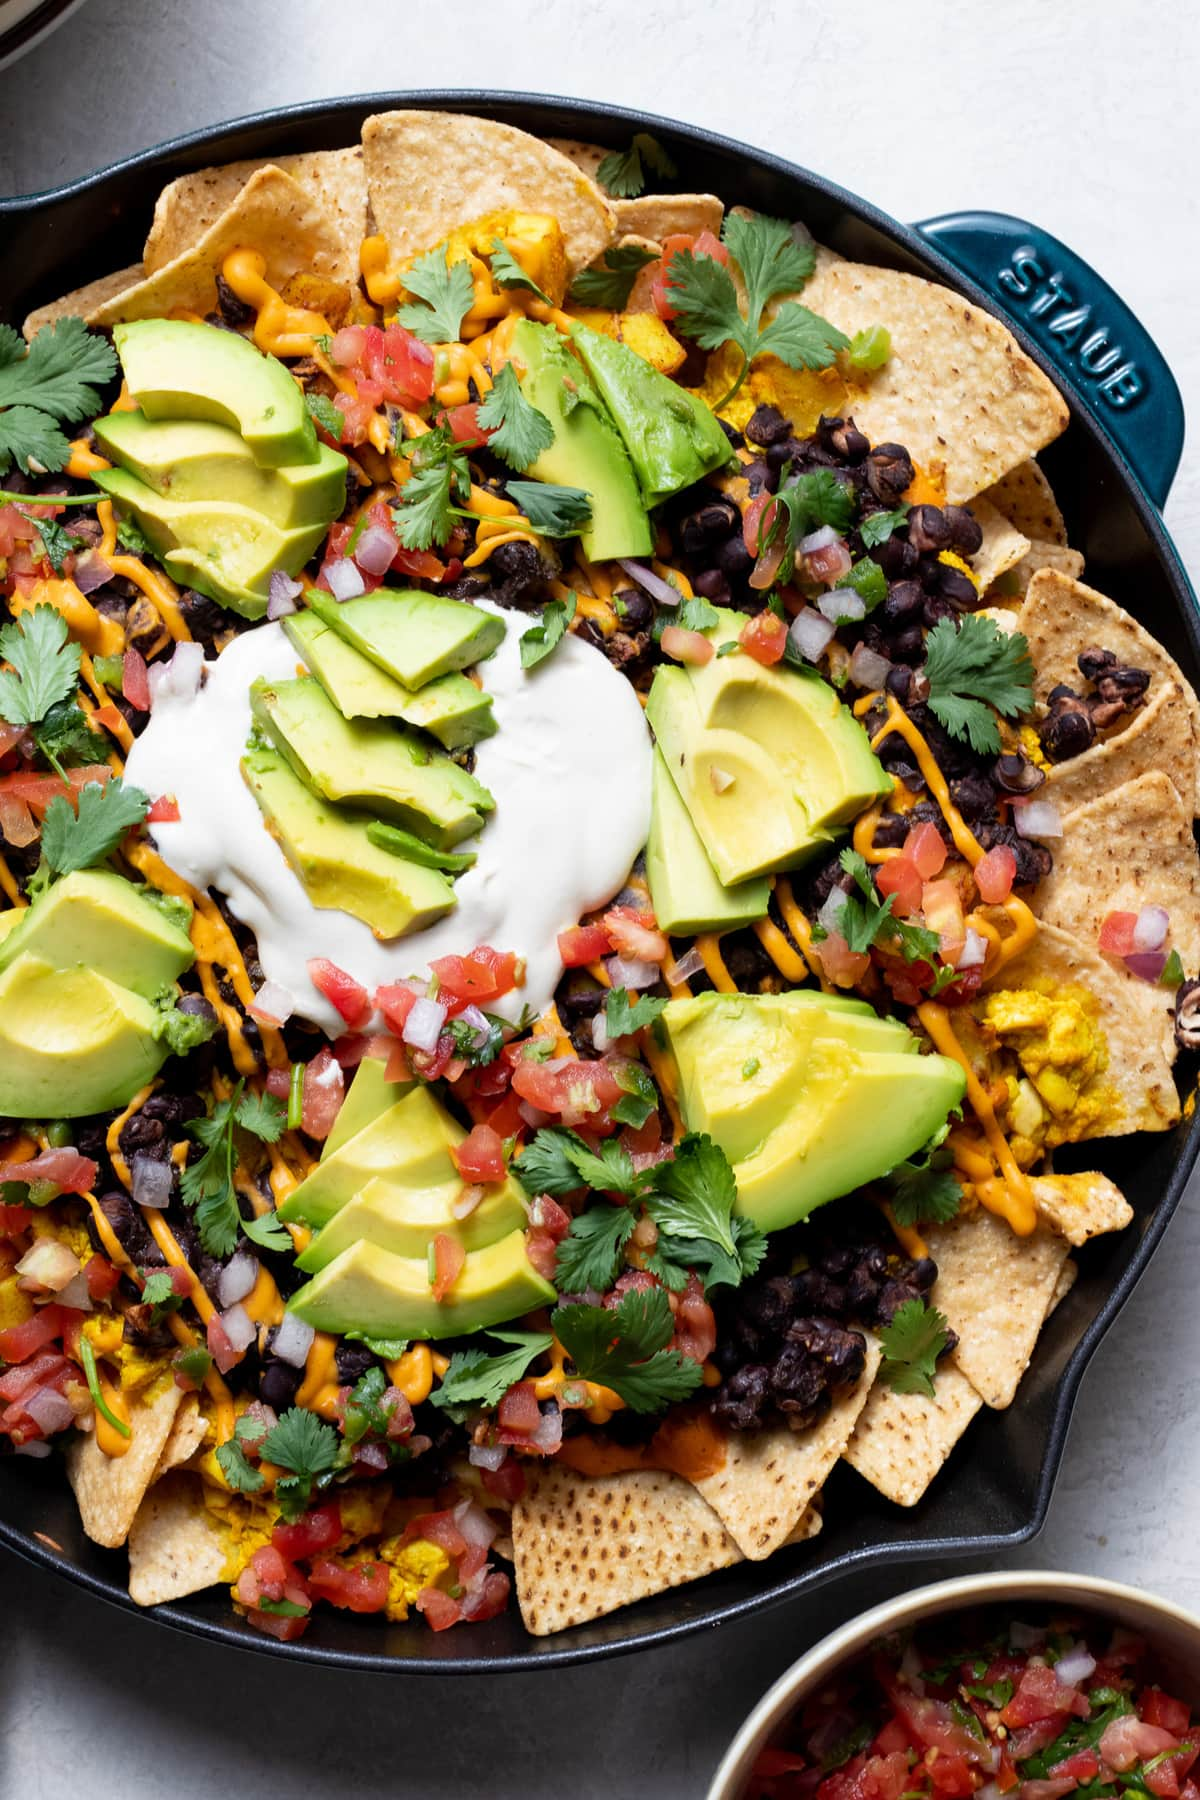 pan of nacho chips with beans, vegan cheese, tofu scramble, avocado and sour cream on top